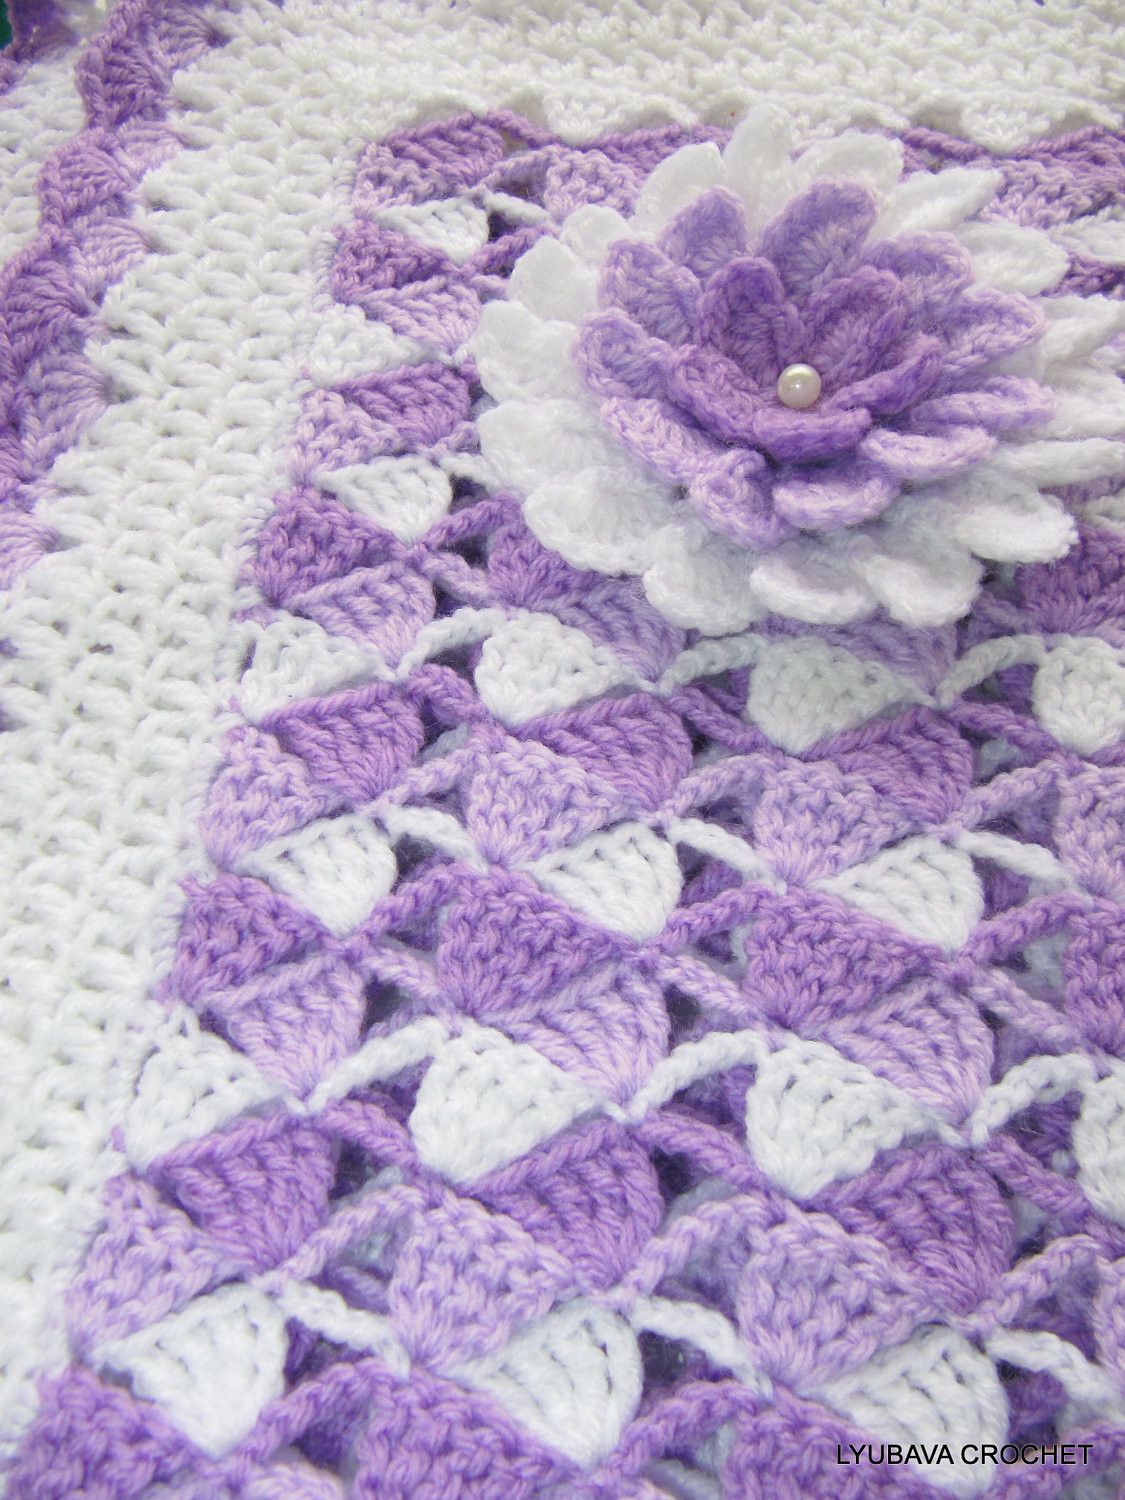 New Free Crochet Edging Patterns for Baby Blankets Crochet Baby Blanket Edging Of Wonderful 42 Images Crochet Baby Blanket Edging